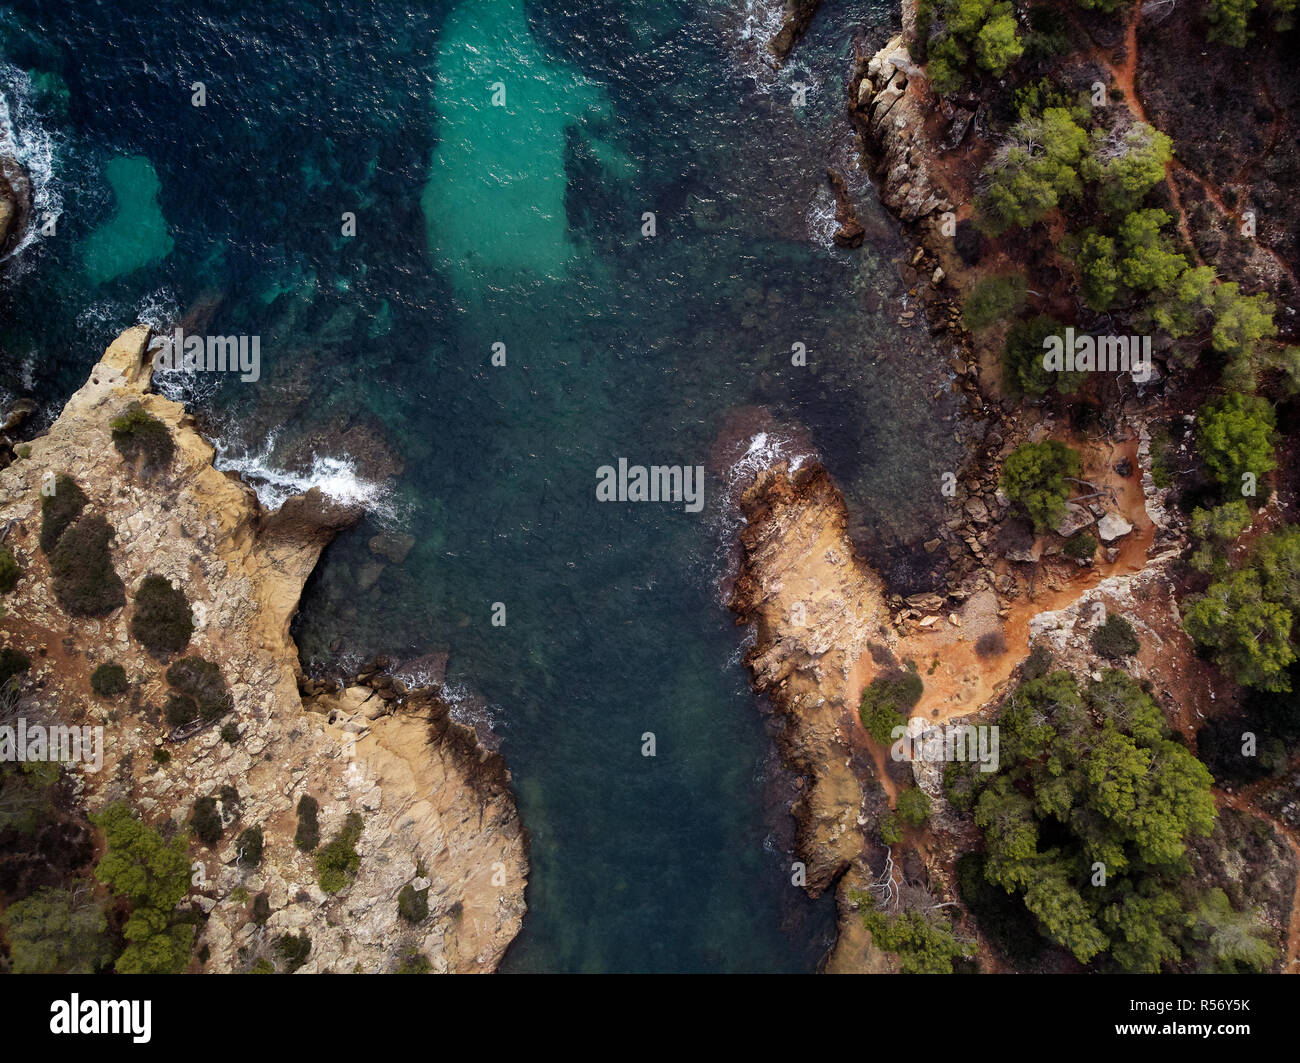 Cap falco beach with turquoise green transparent water and rocky coast, view directly from above. Aerial drone photography. Mallorca or Majorca Island - Stock Image